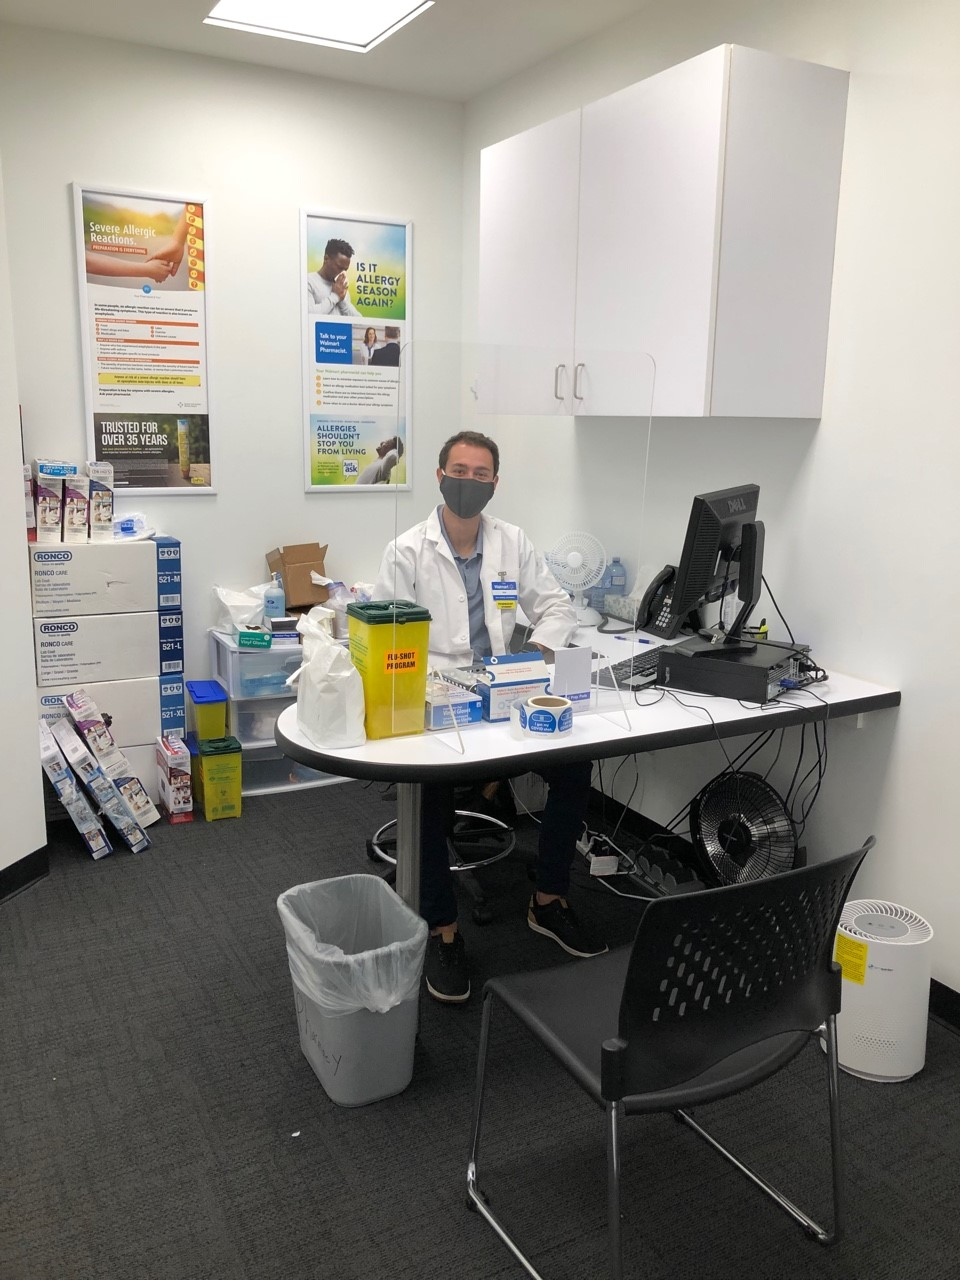 Max working at his office